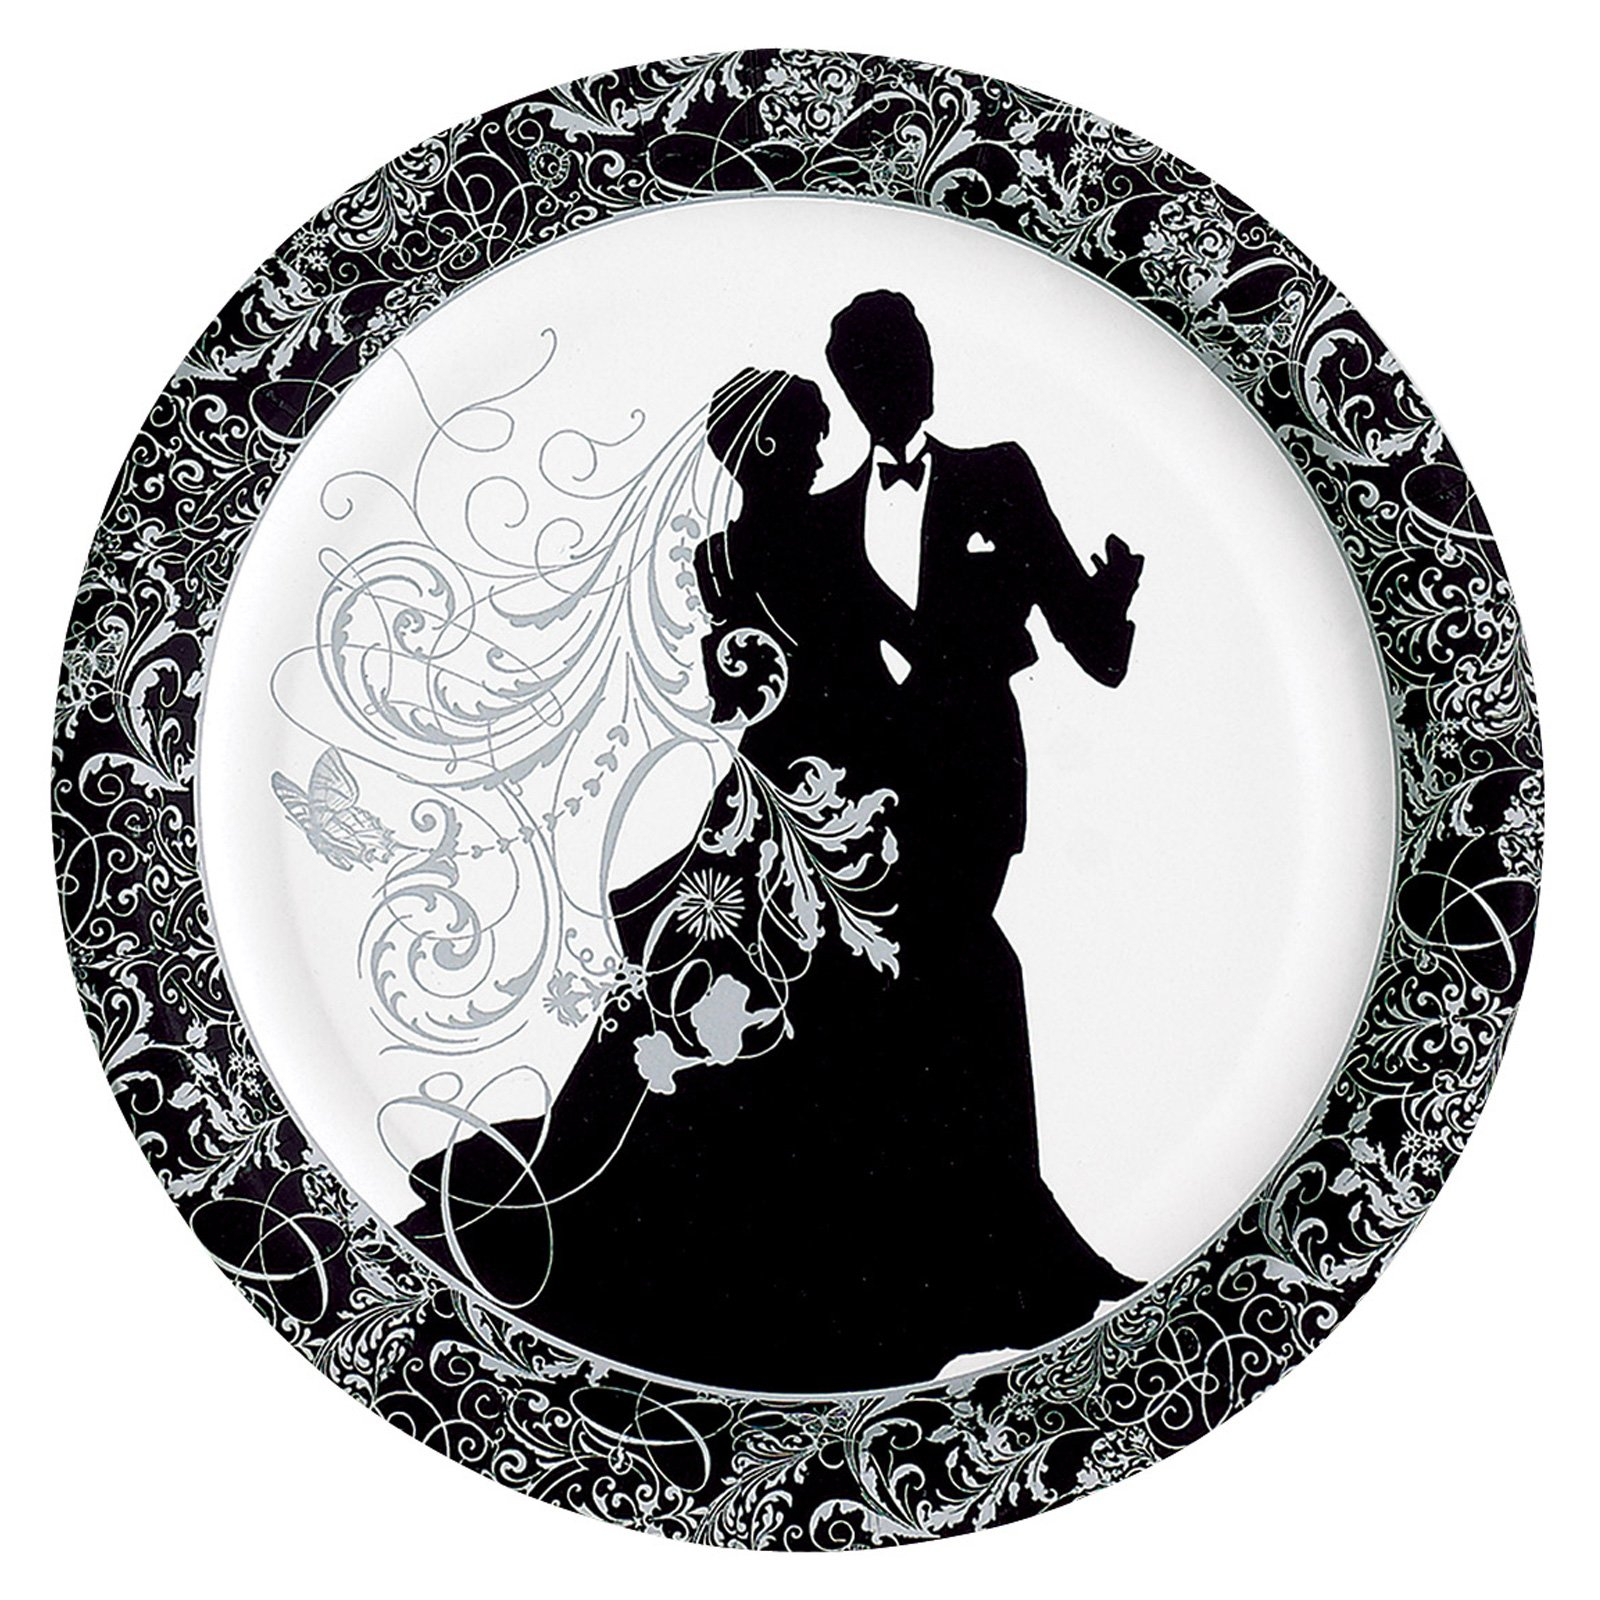 Silhouette Banquet Plates (8 count)